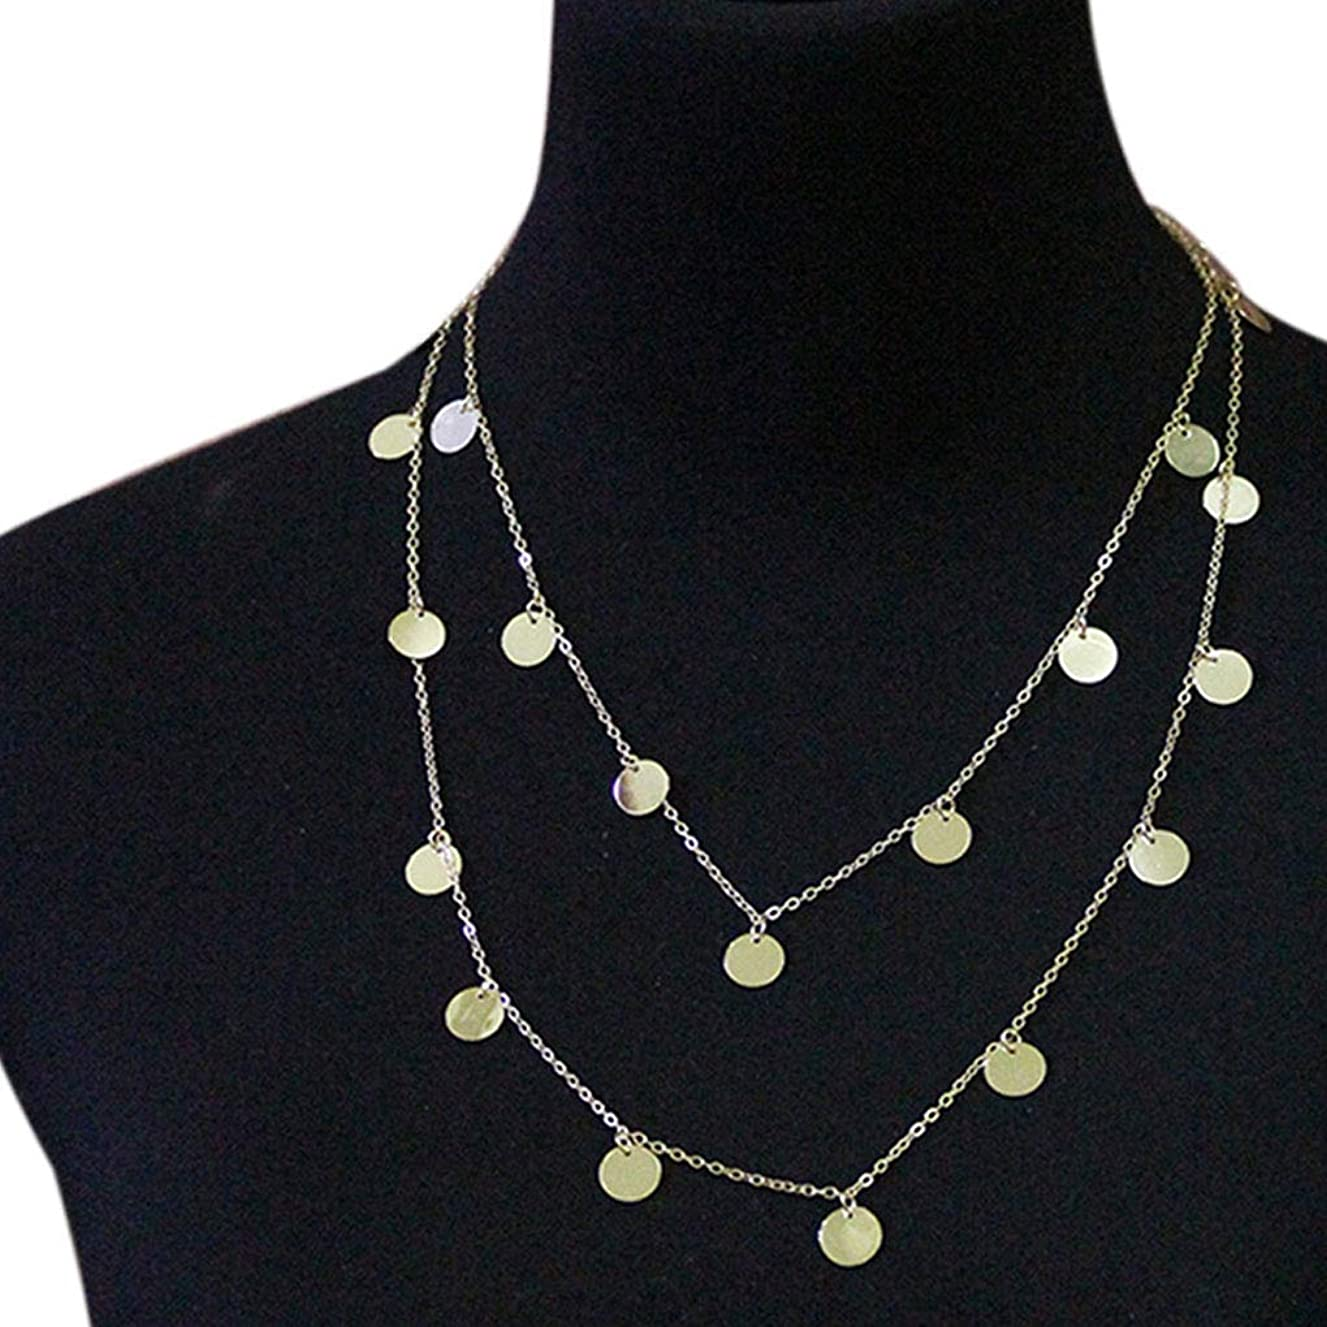 andy cool Attractive Simple Women Round Pendant Necklace Set Multi-layer Girl Round Shape Chain Choker Lady Jewelry Gift Useful and Practical